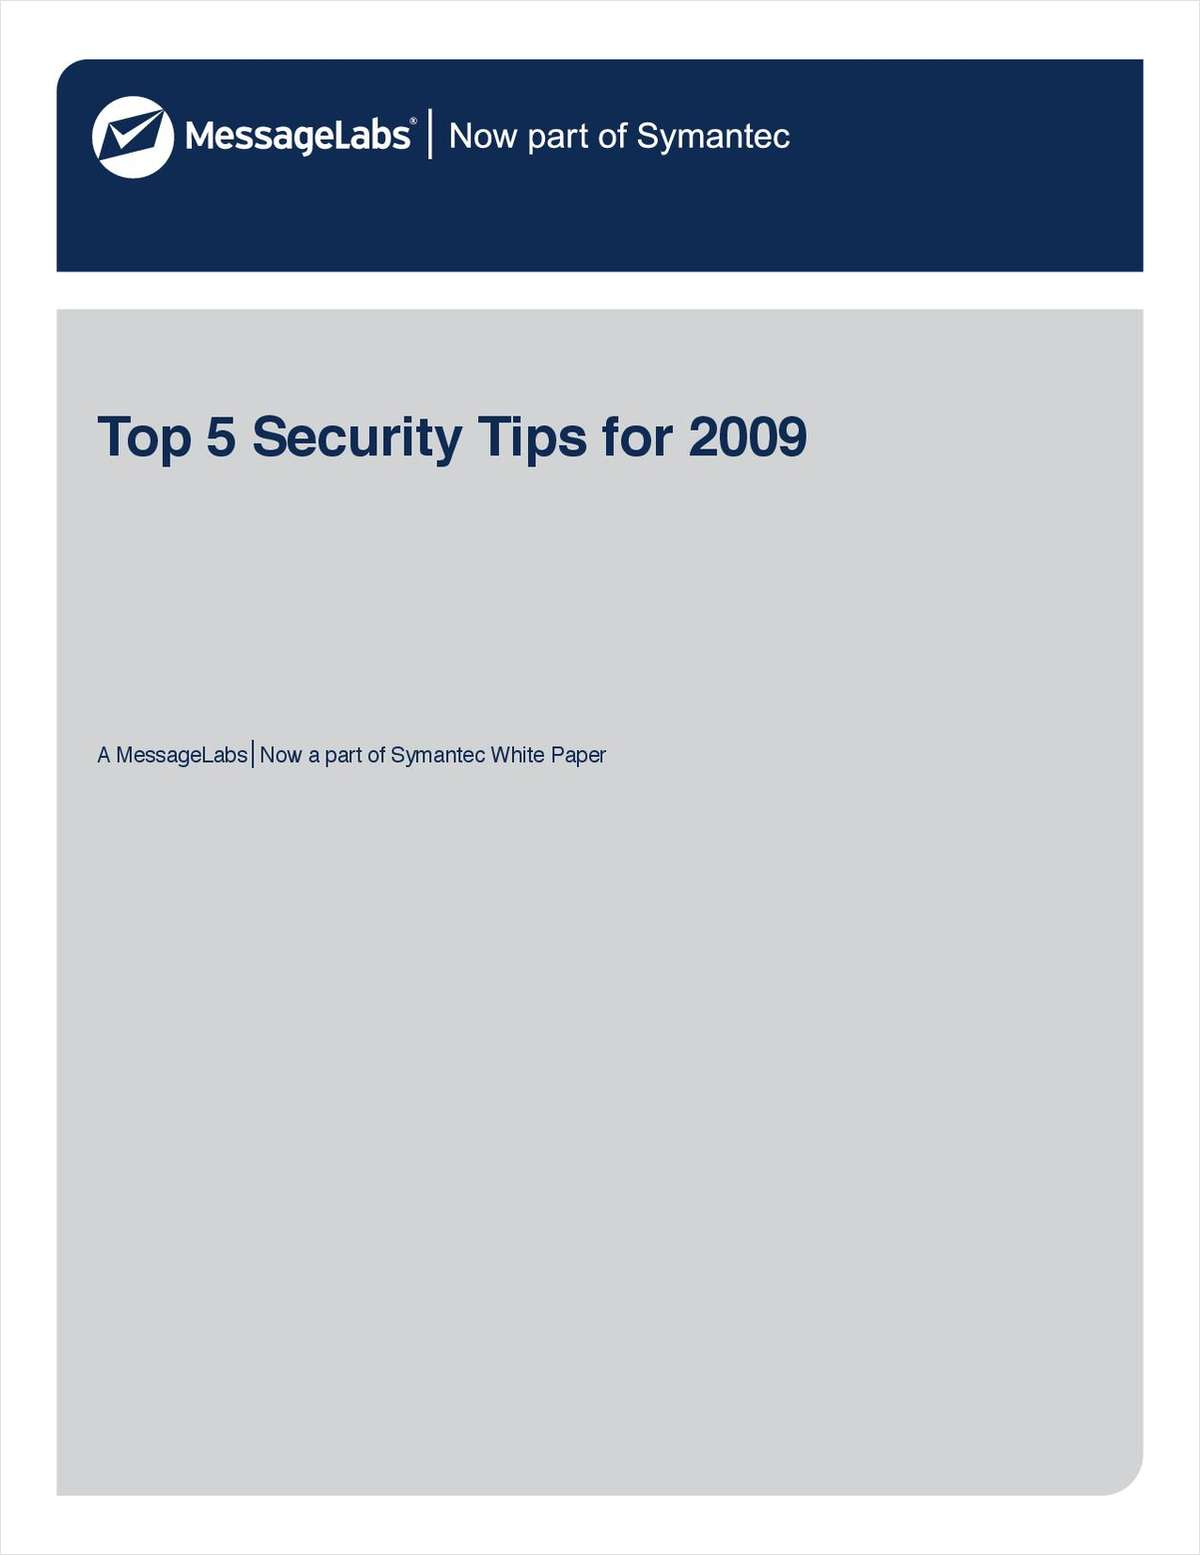 Top 5 Tips for Email and Web Security